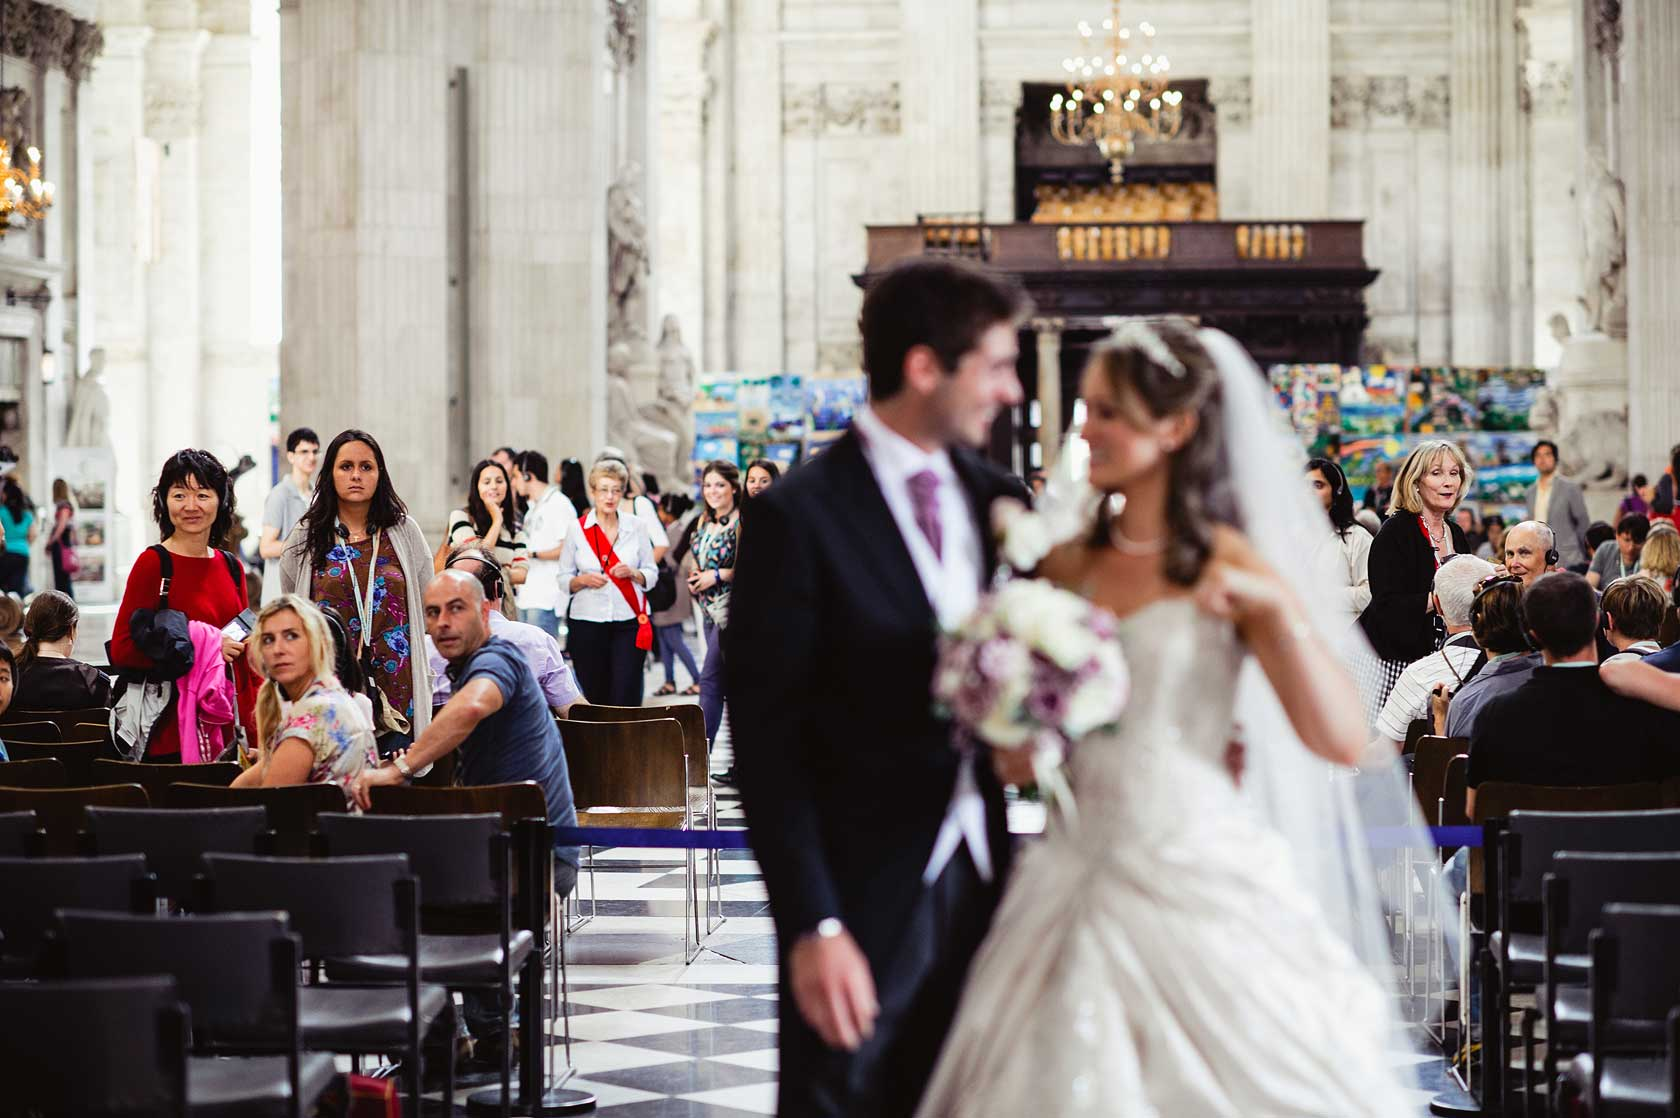 Reportage Wedding Photography at St Pauls Cathedral